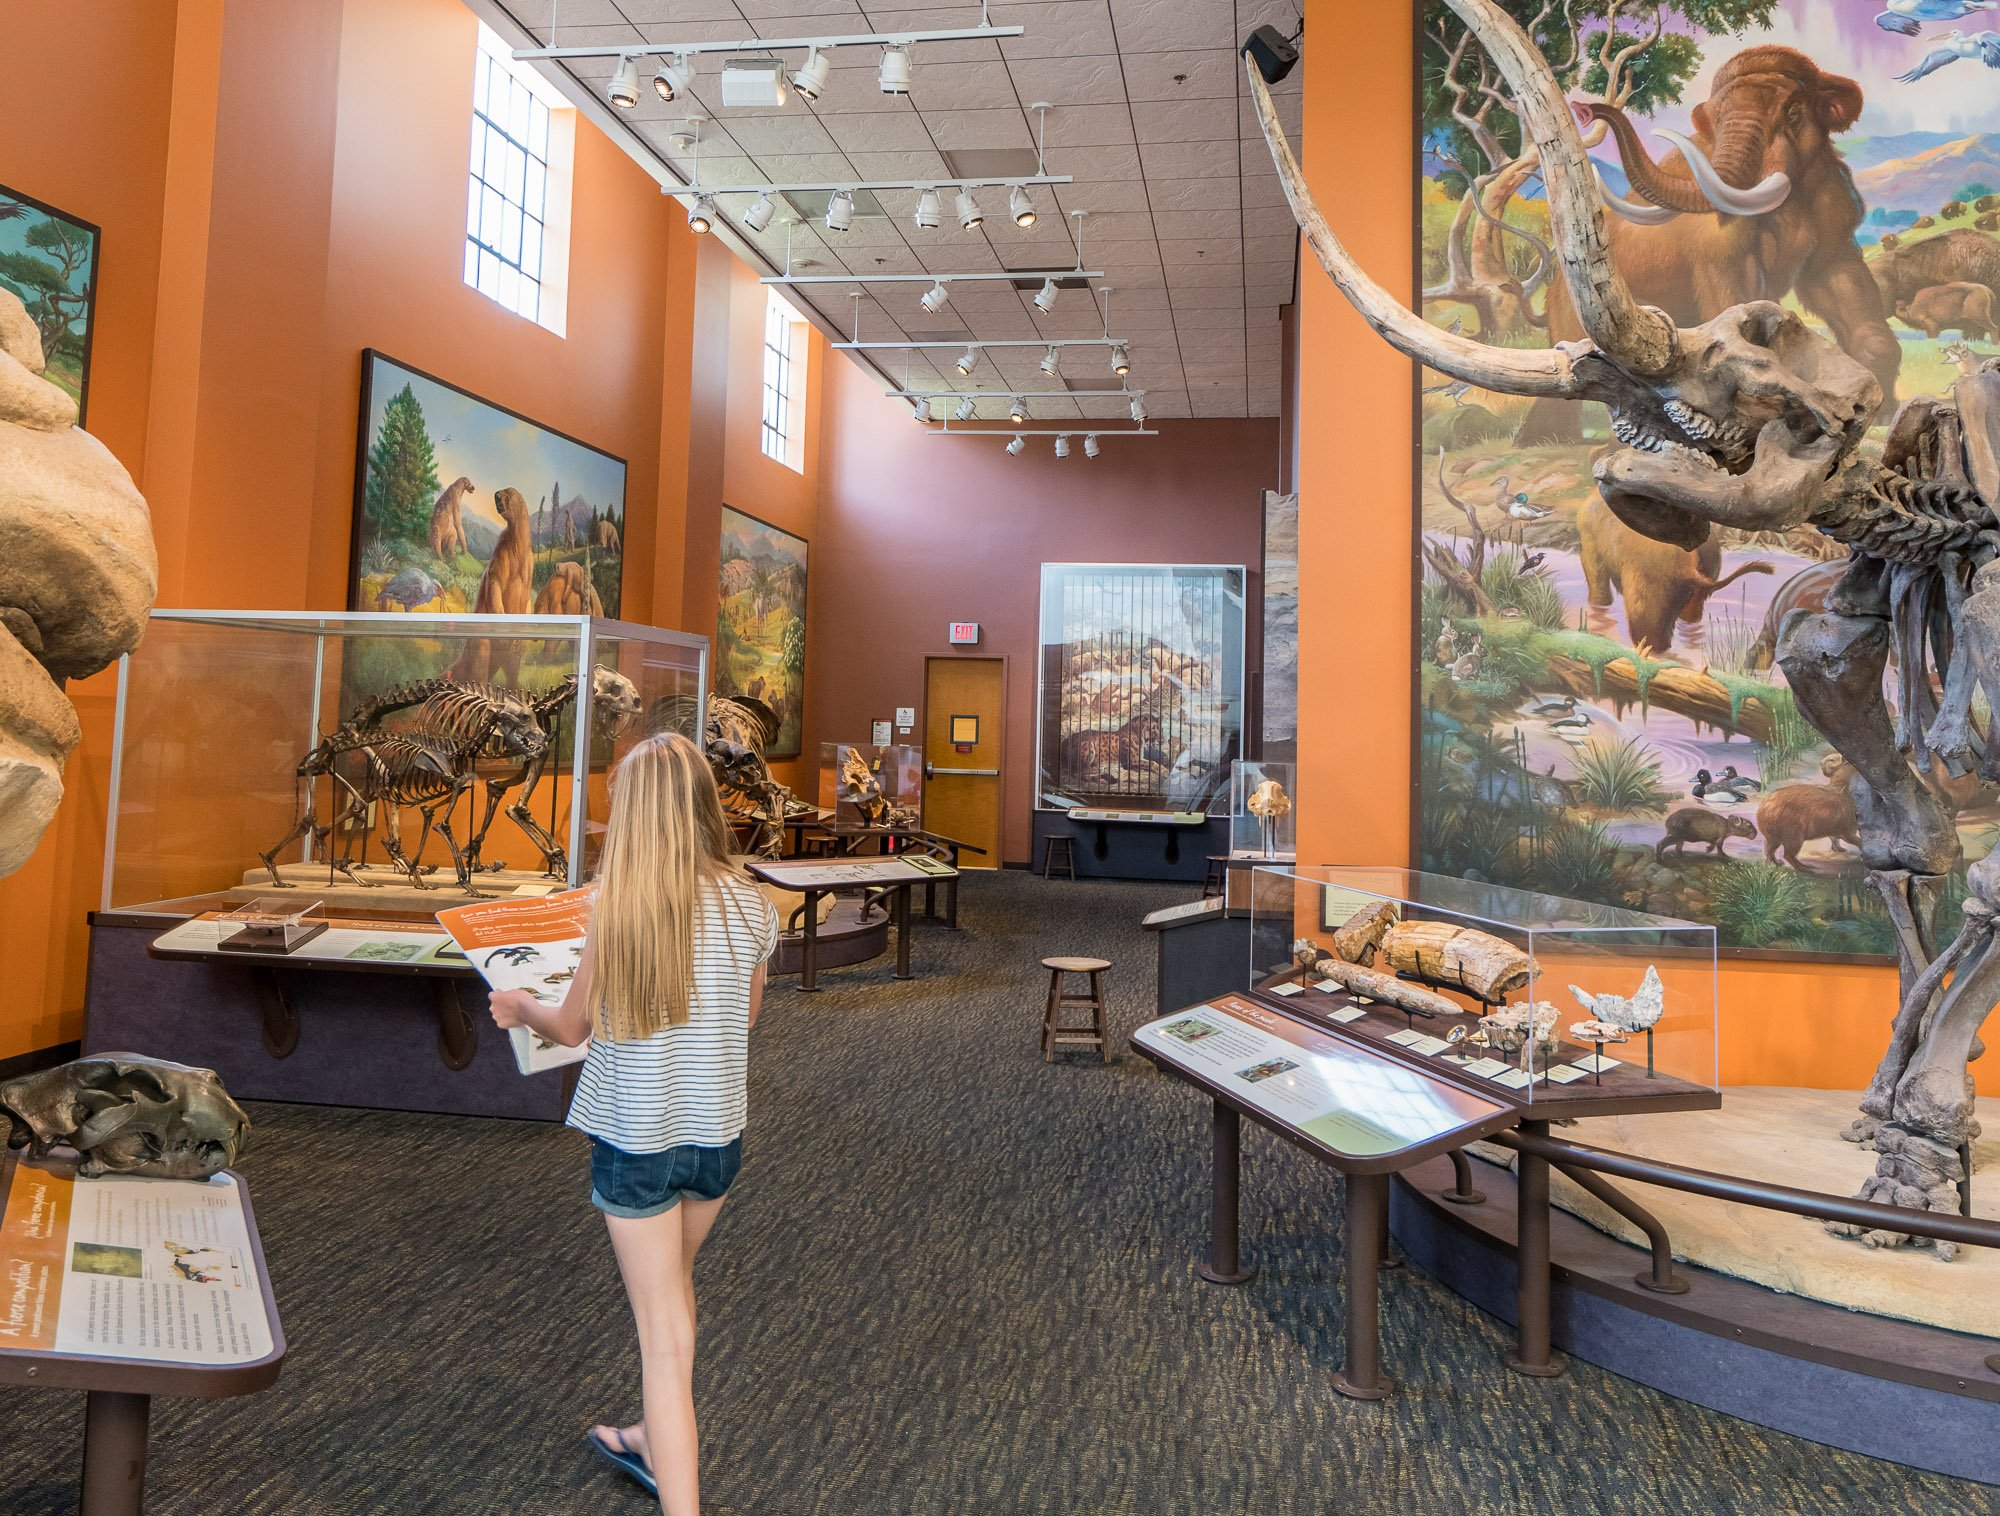 Best San Diego museums: San Diego Natural History Museum